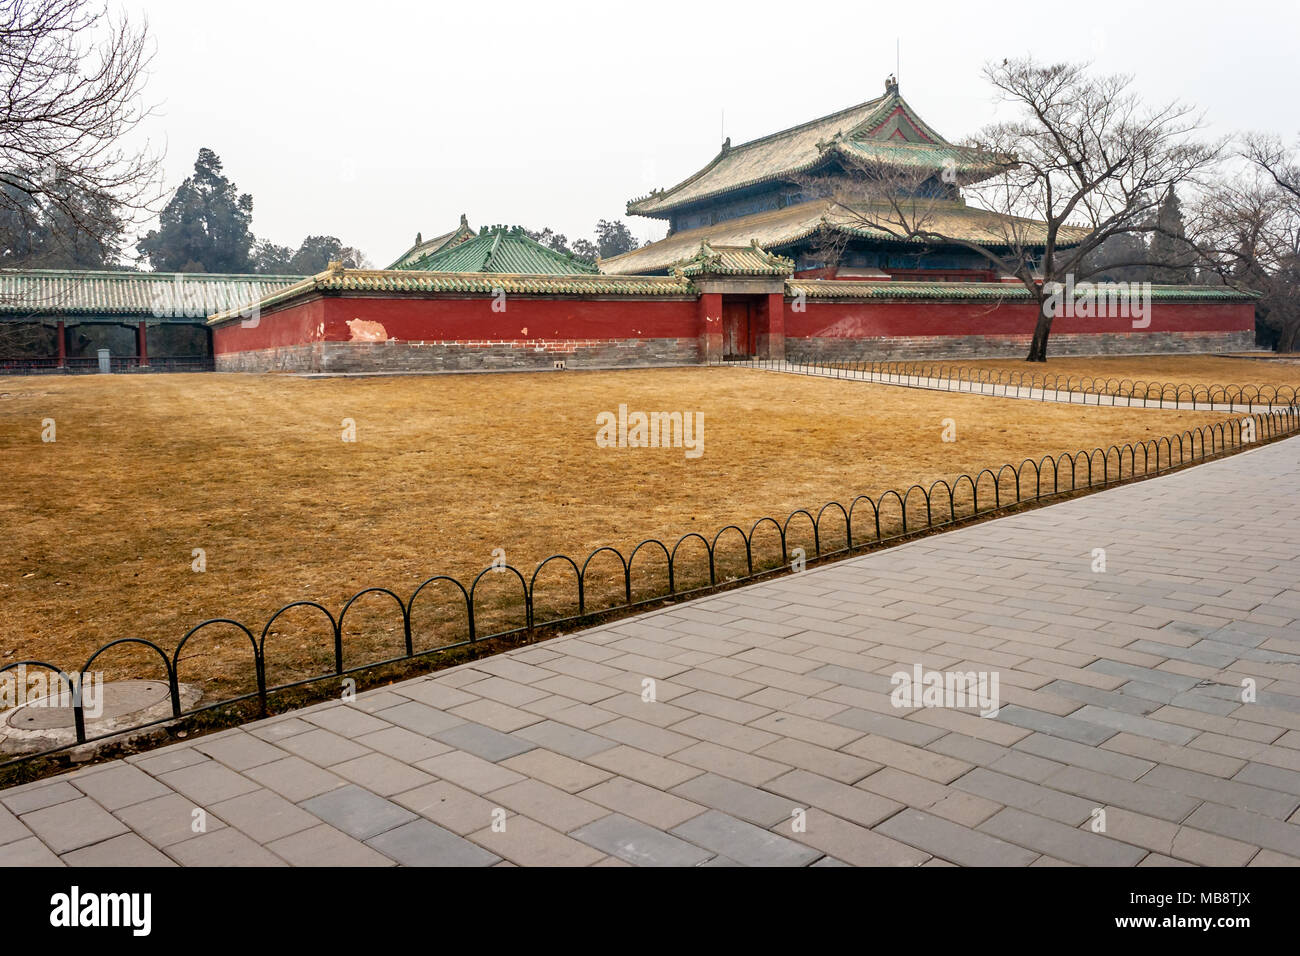 View of Typical Chineese Palace Building in Beijing Park Stock Photo